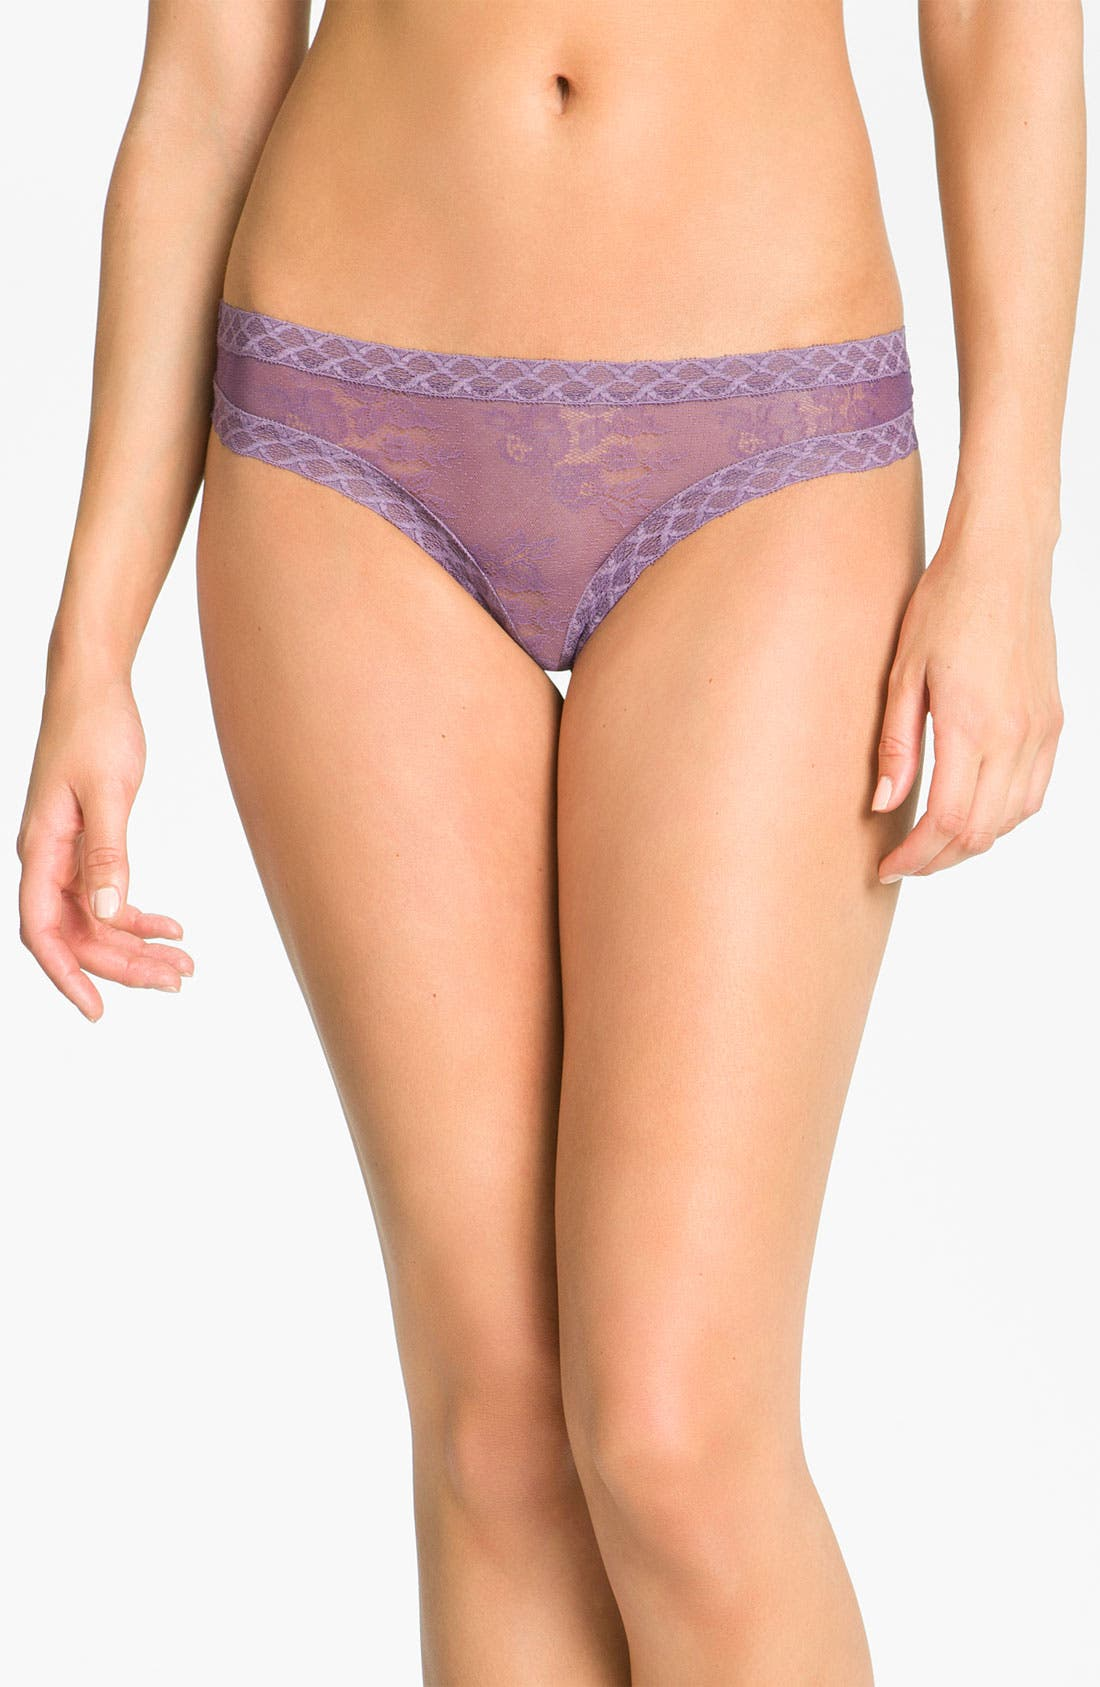 Alternate Image 1 Selected - Natori 'Bliss' Lace Thong